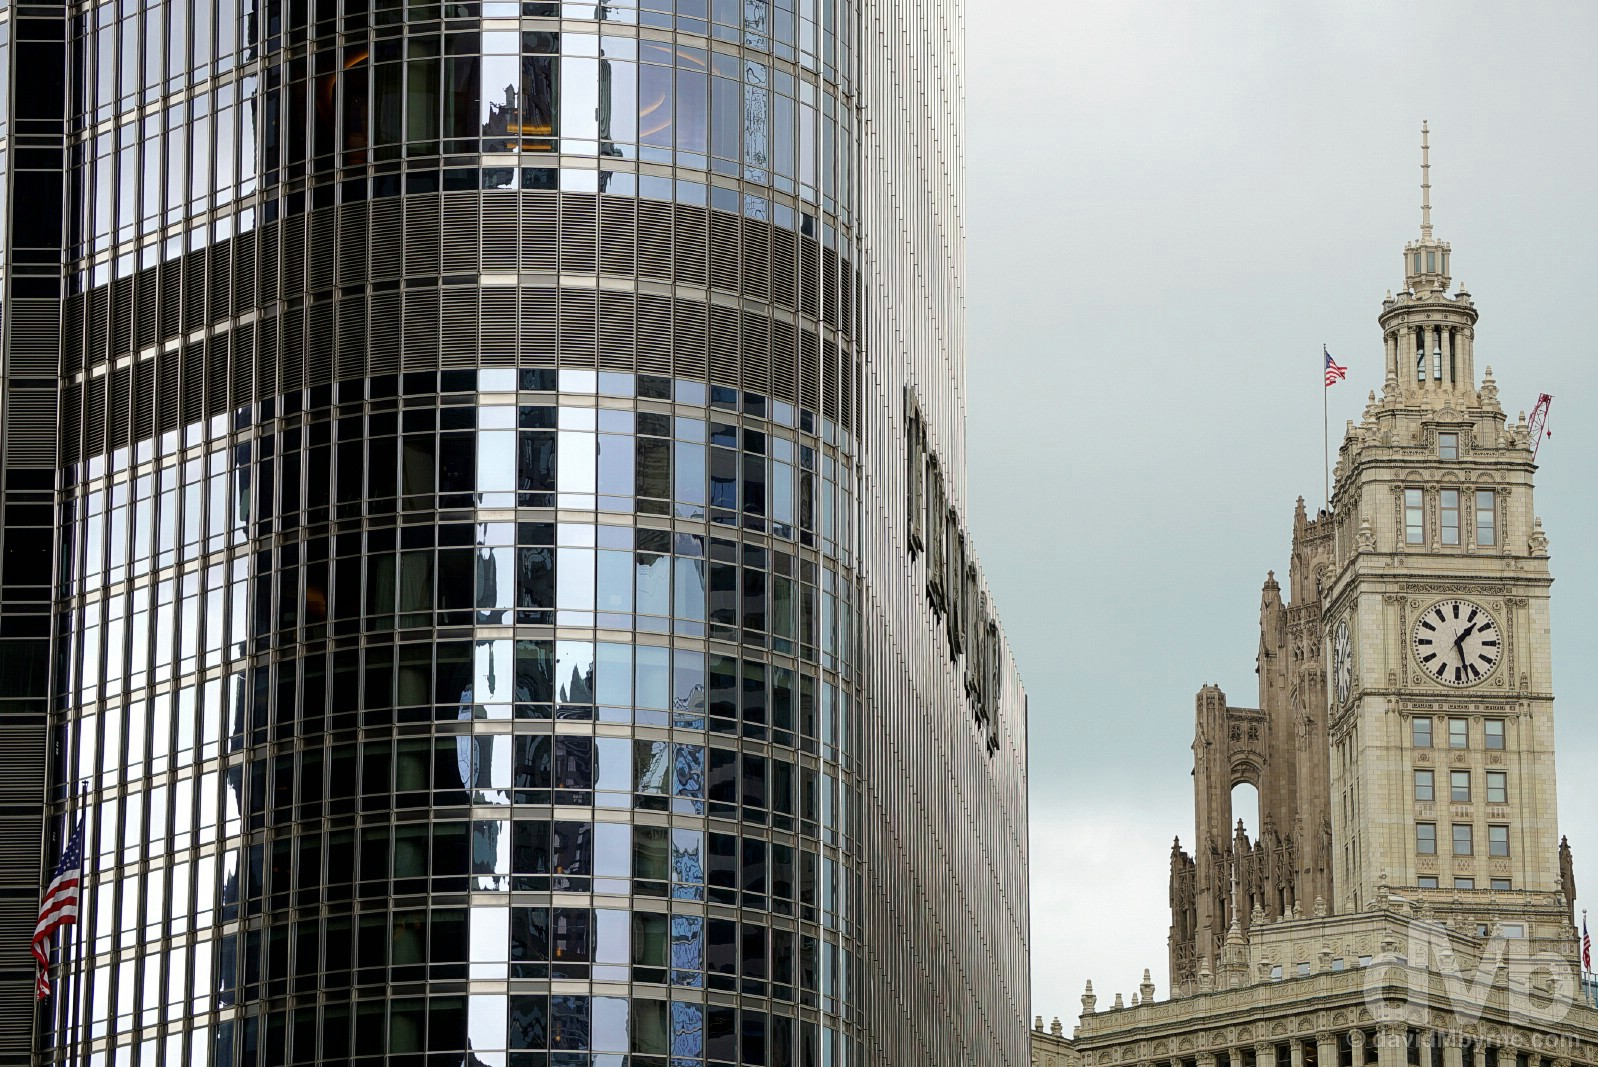 Trump International Hotel & the Wrigley Building in downtown Chicago, Illinois, USA. October 2, 2016.